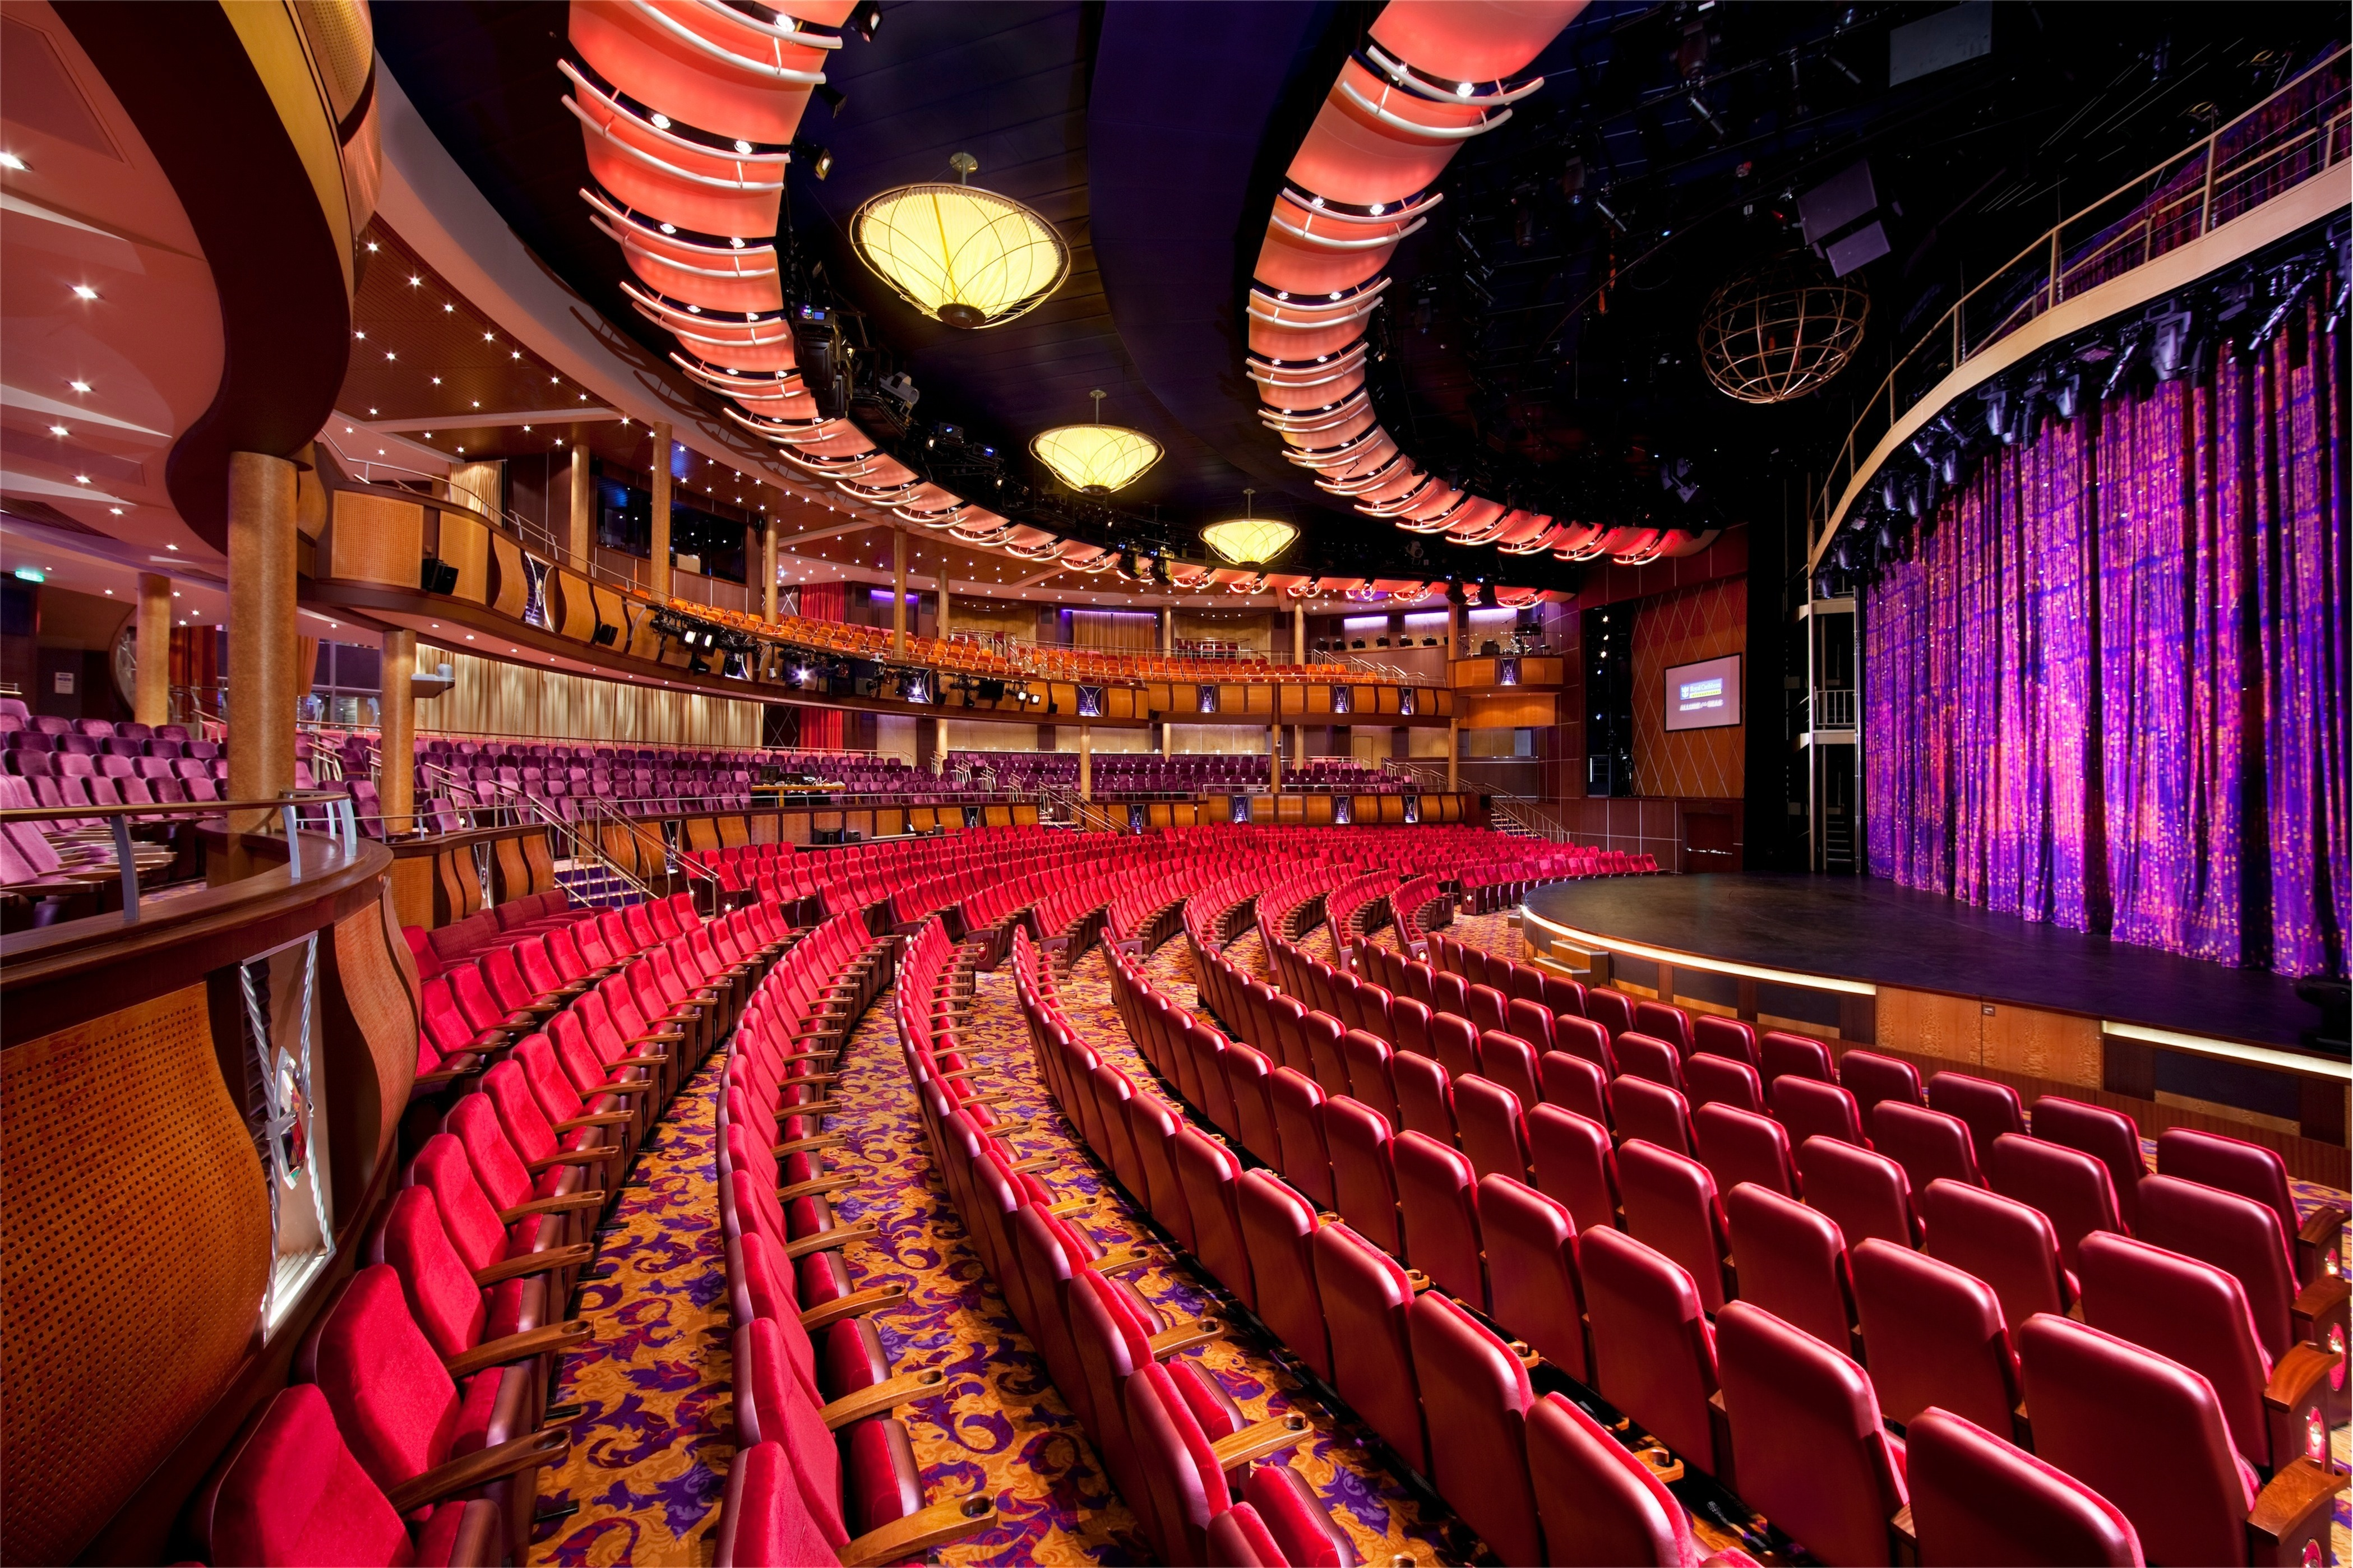 Royal Caribbean International Allure of the Seas Interior Amber Theater.jpg